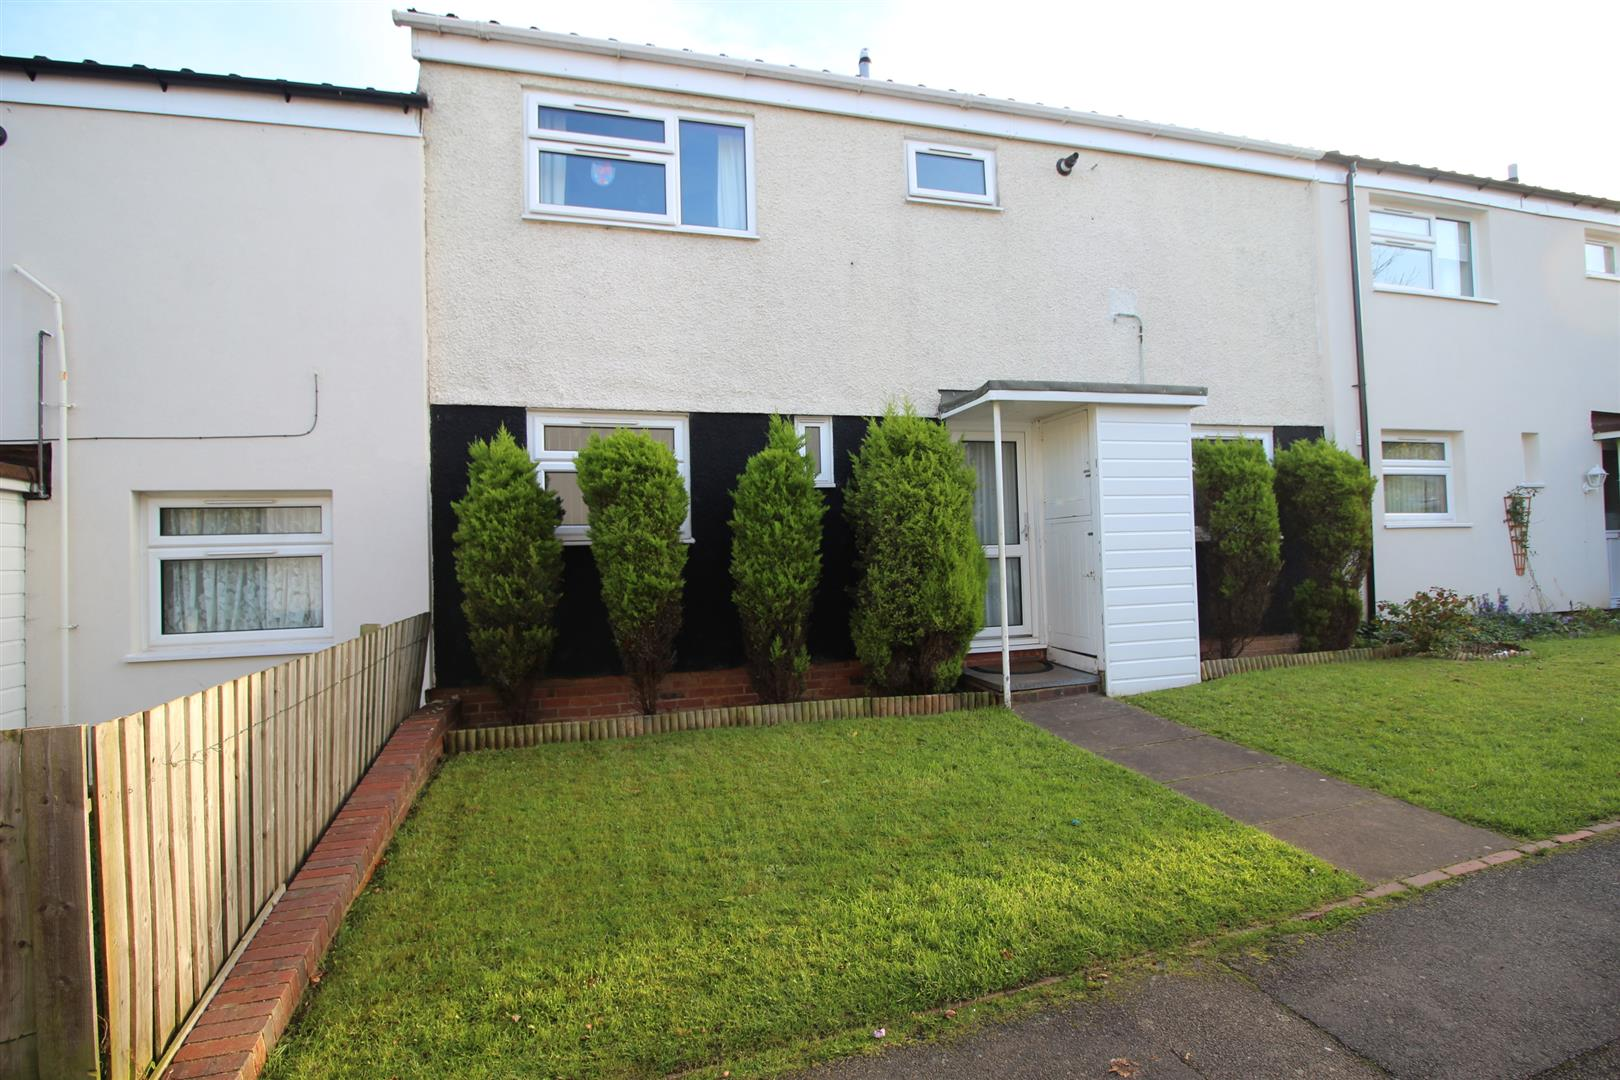 3 Bedrooms Terraced House for sale in Longdon Close, Redditch